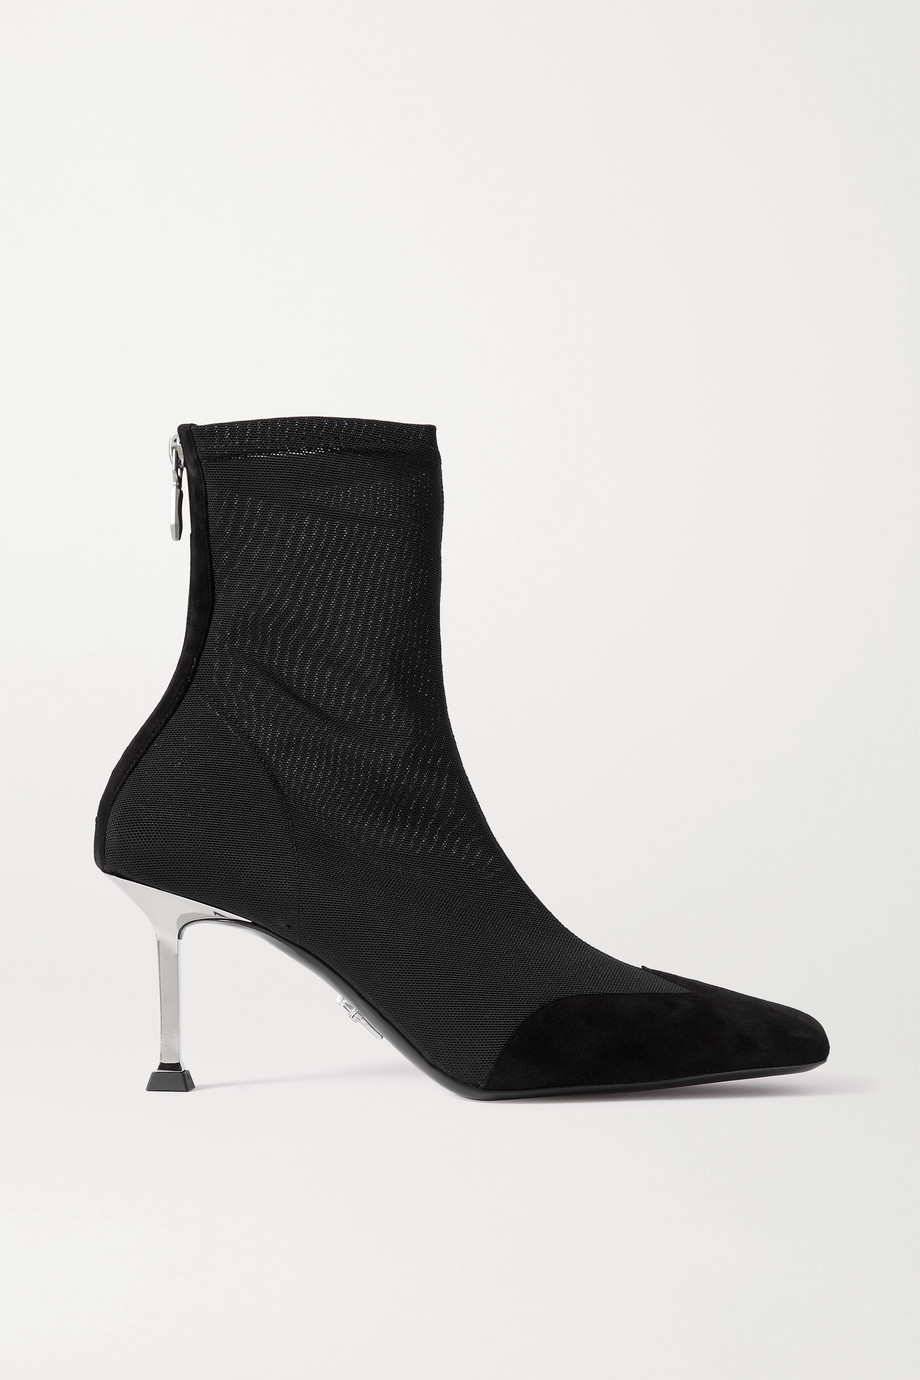 Paciotti Bottines en résille à finitions en daim